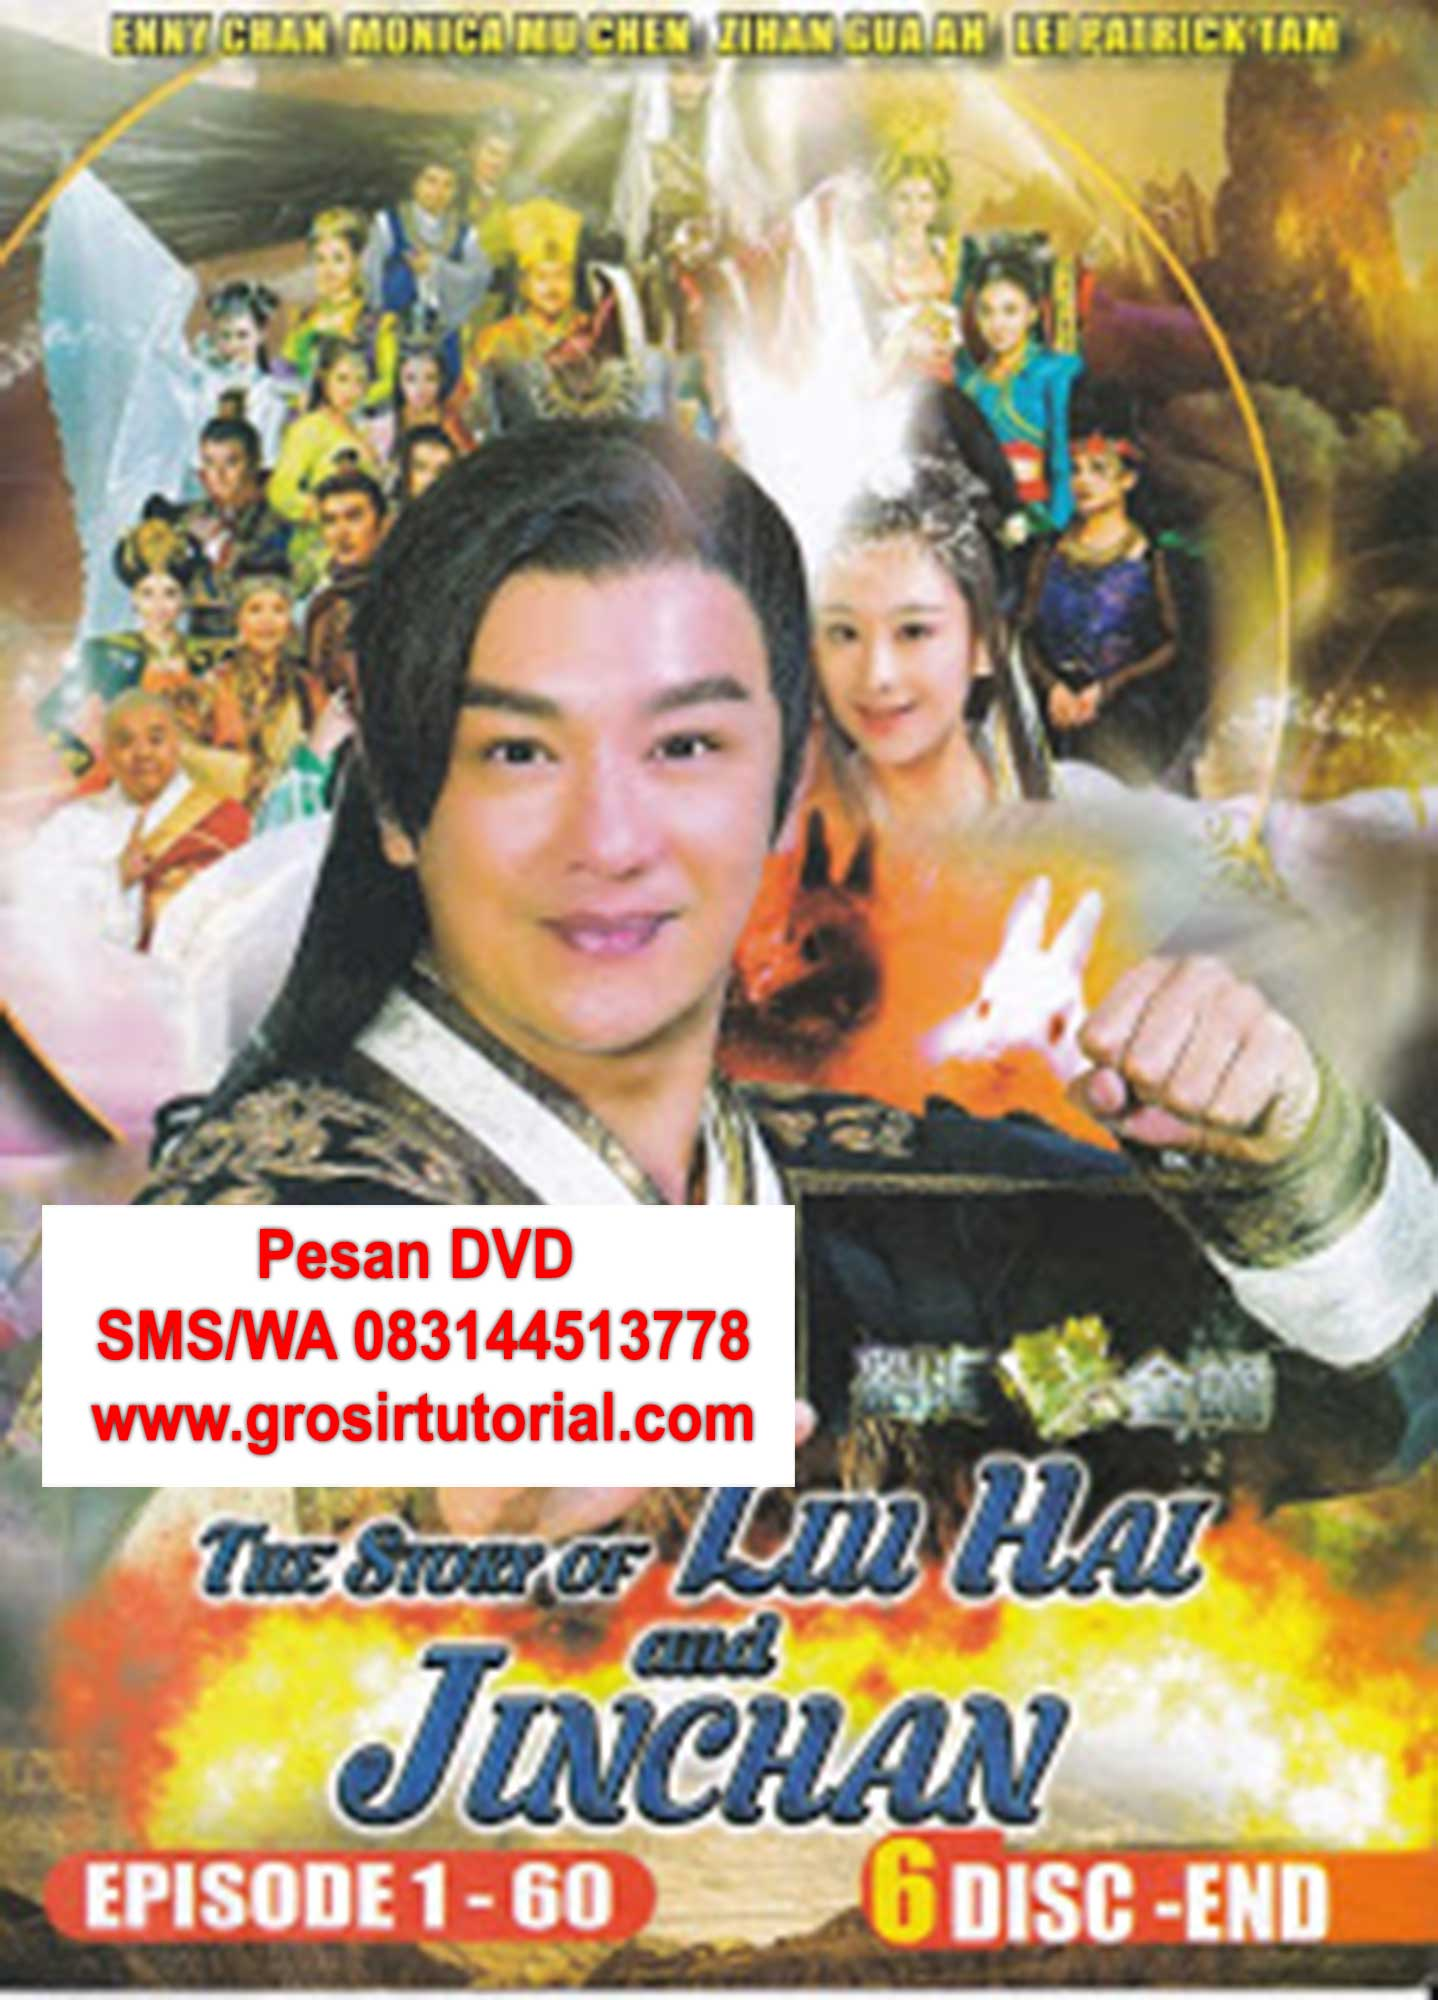 beli-DVD-mandarin-The-Story-Of-Liu-Hai-And-Junchan